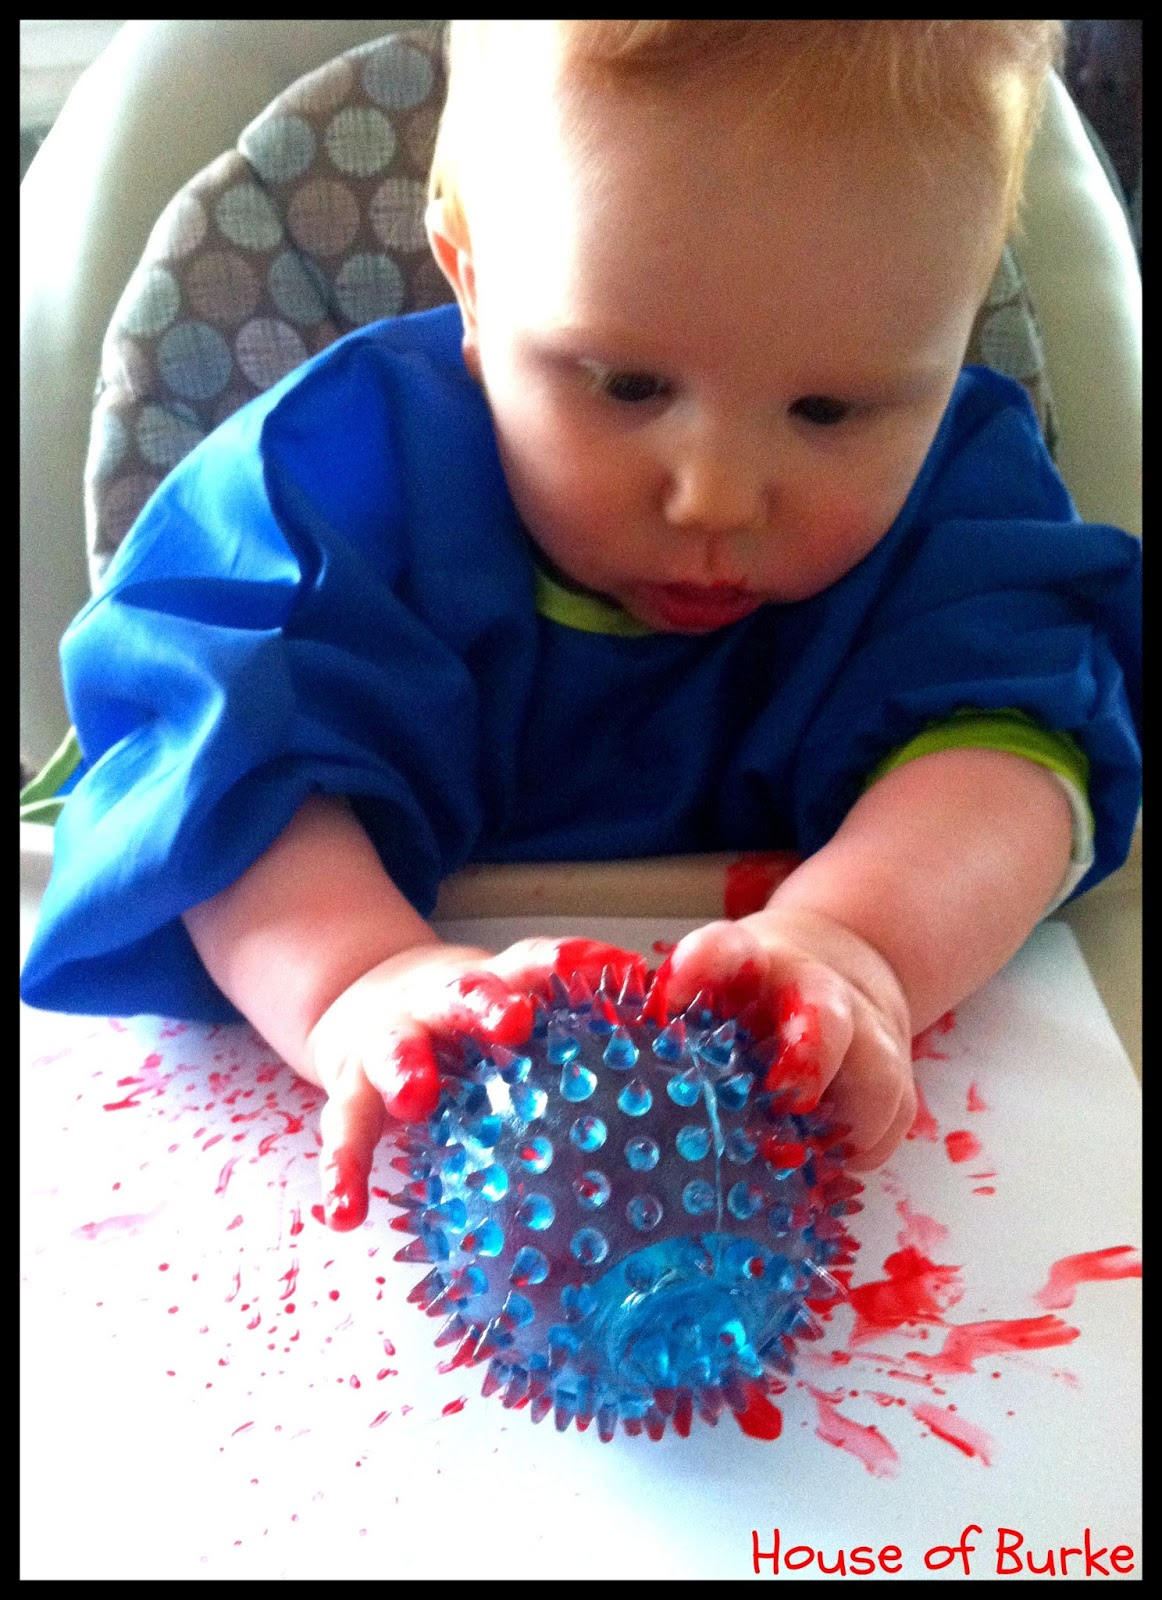 House of burke spiky ball painting for Painting ideas for 4 year olds